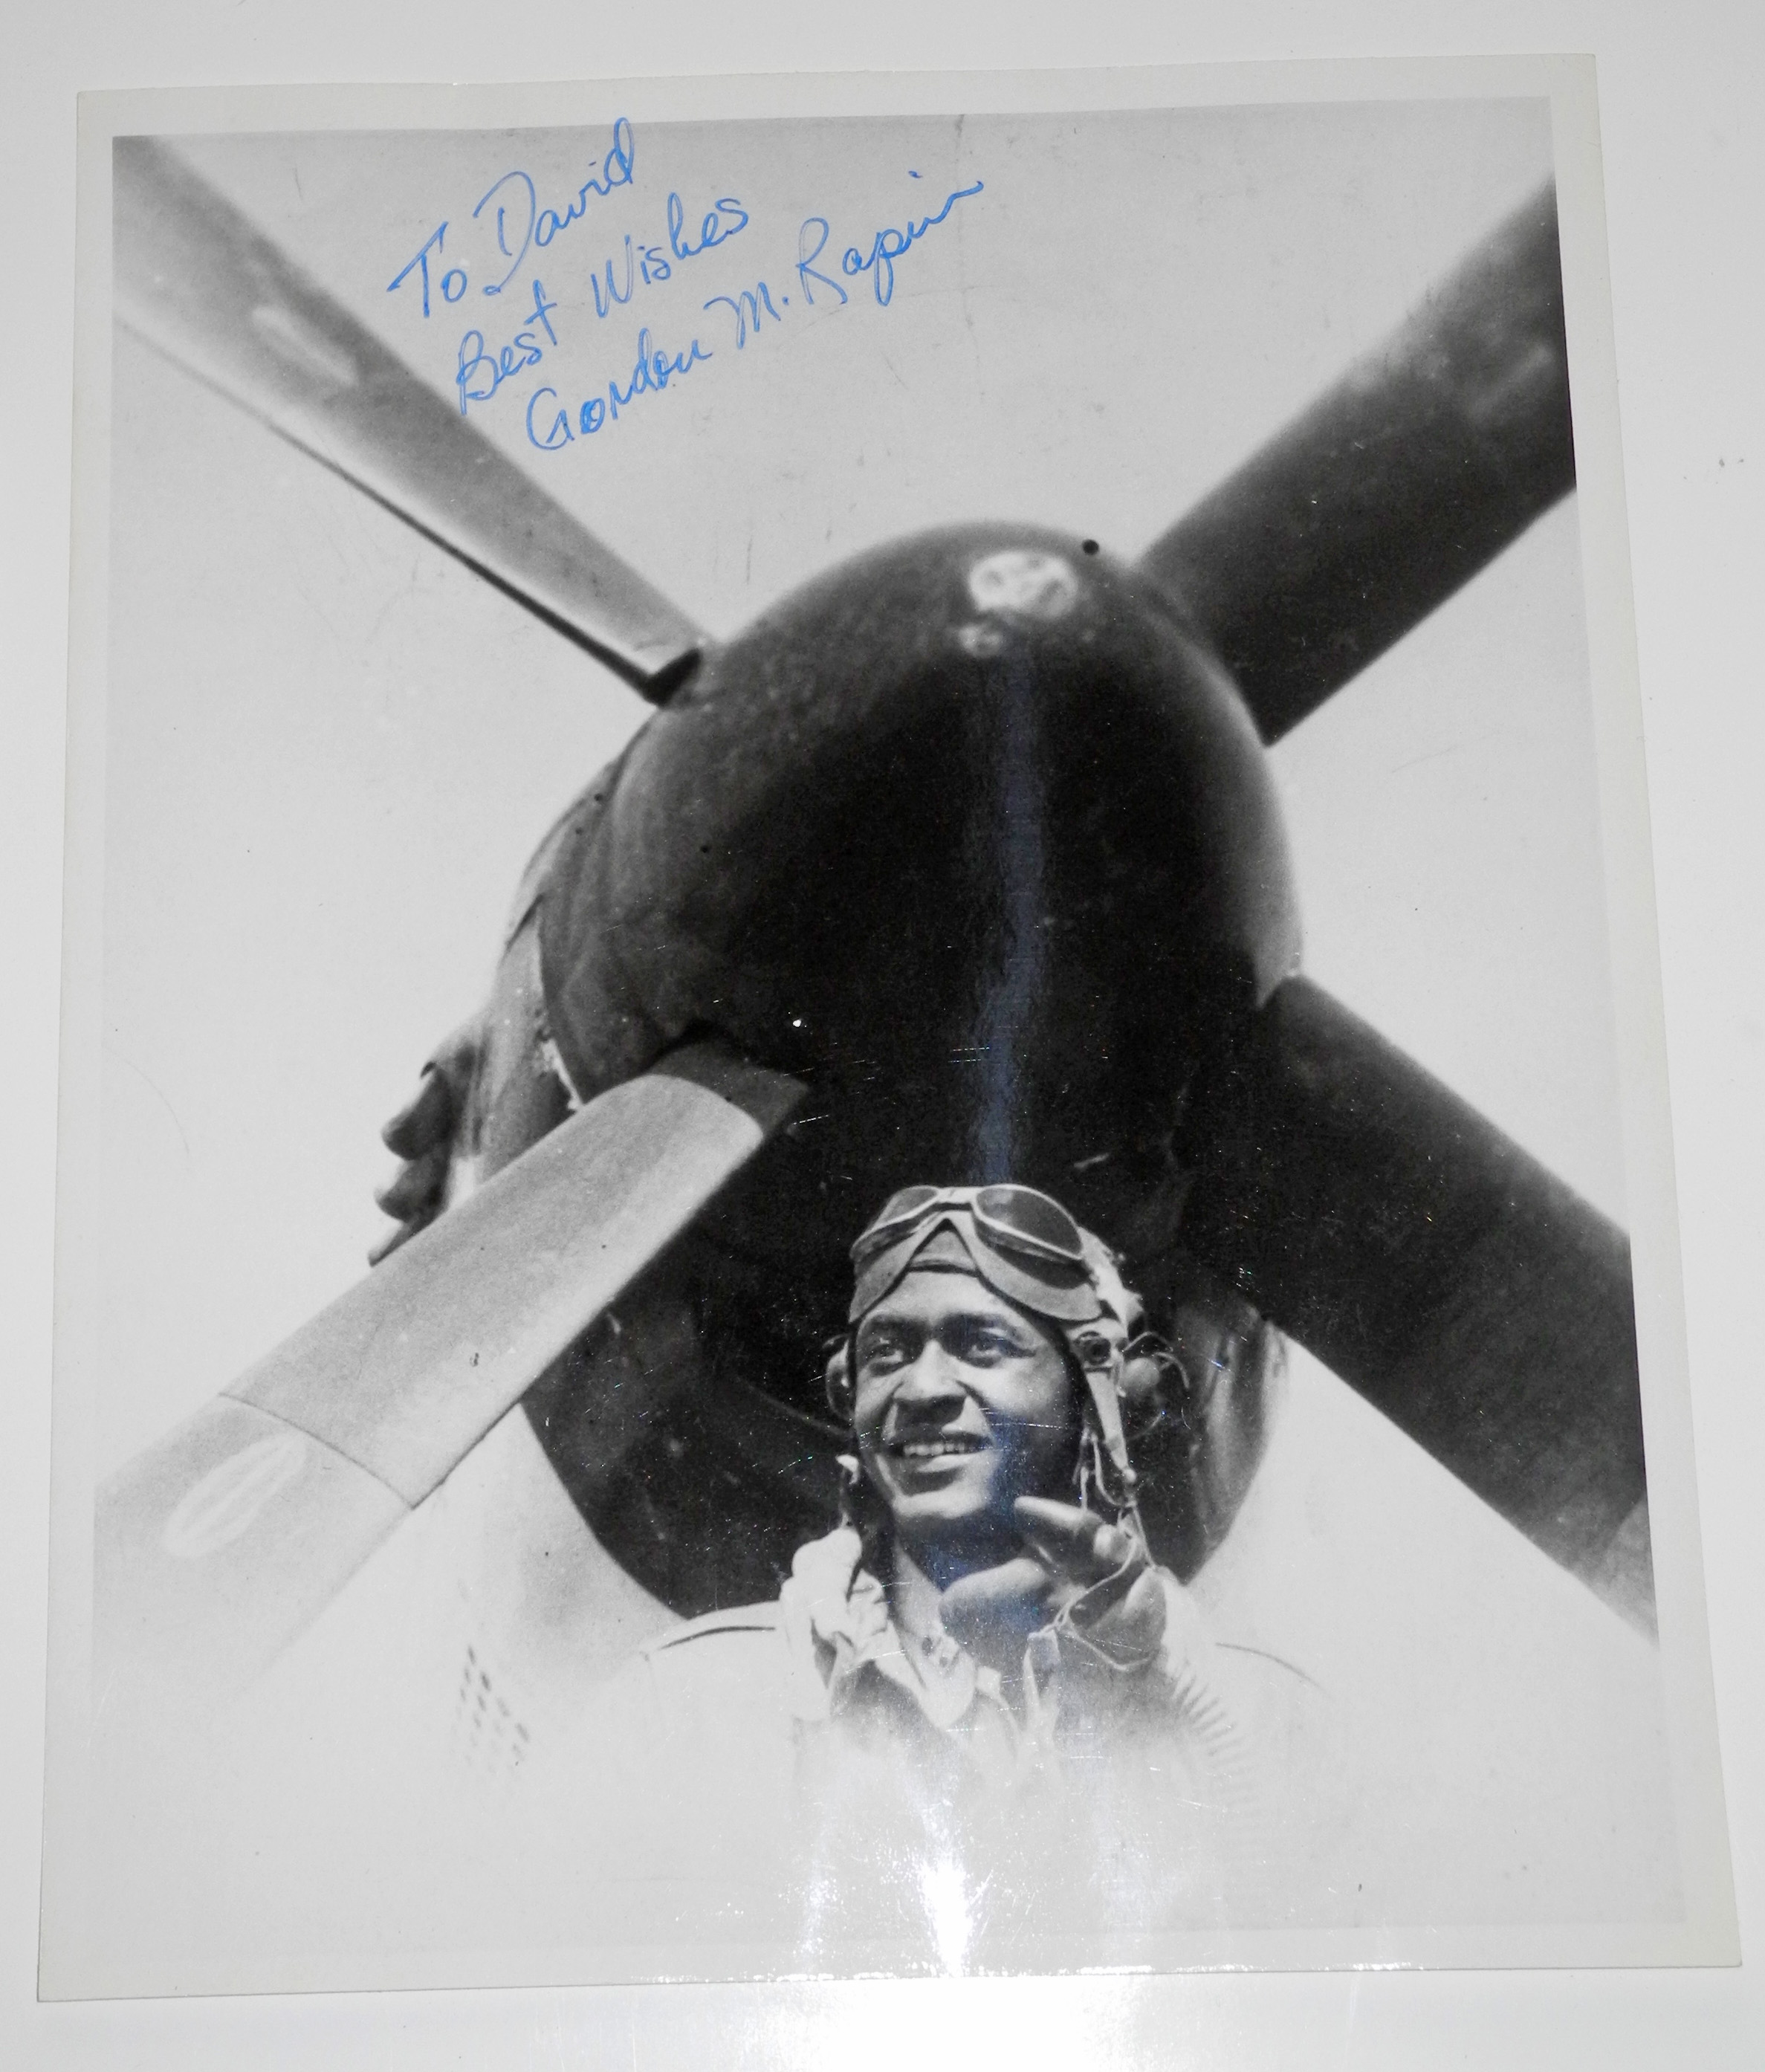 Signed photo of Tuskeegee airman Gordon Rapier